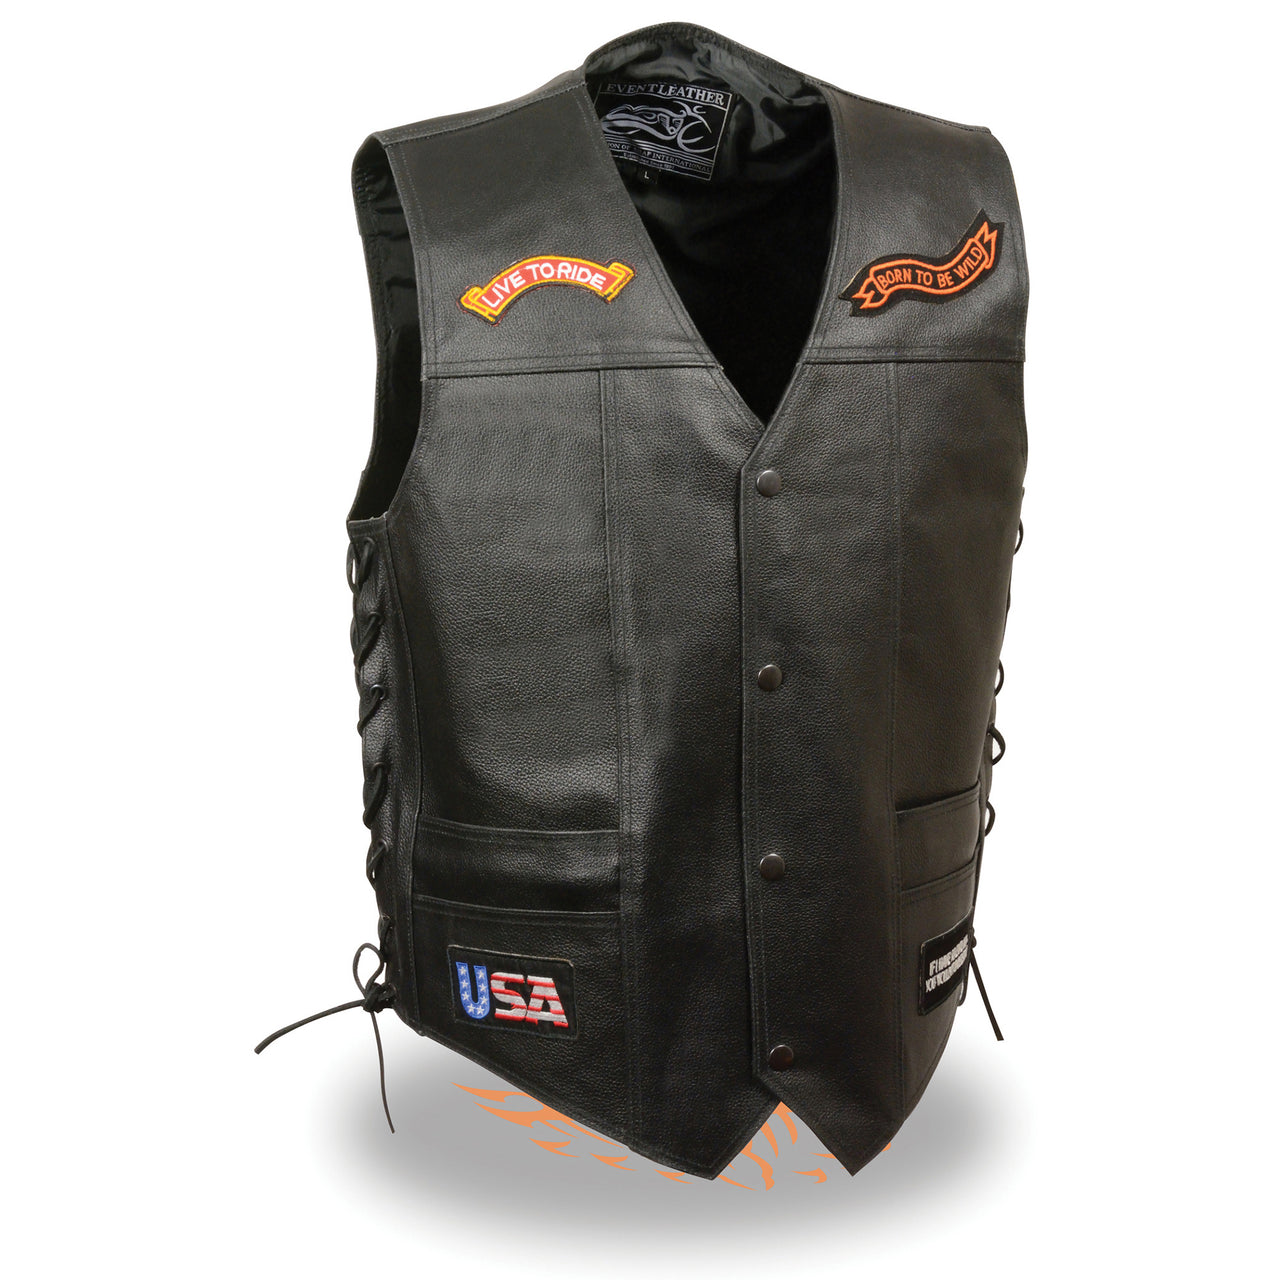 "Men's Side Lace Live to Ride"" Pre-Patched Vest - HighwayLeather"